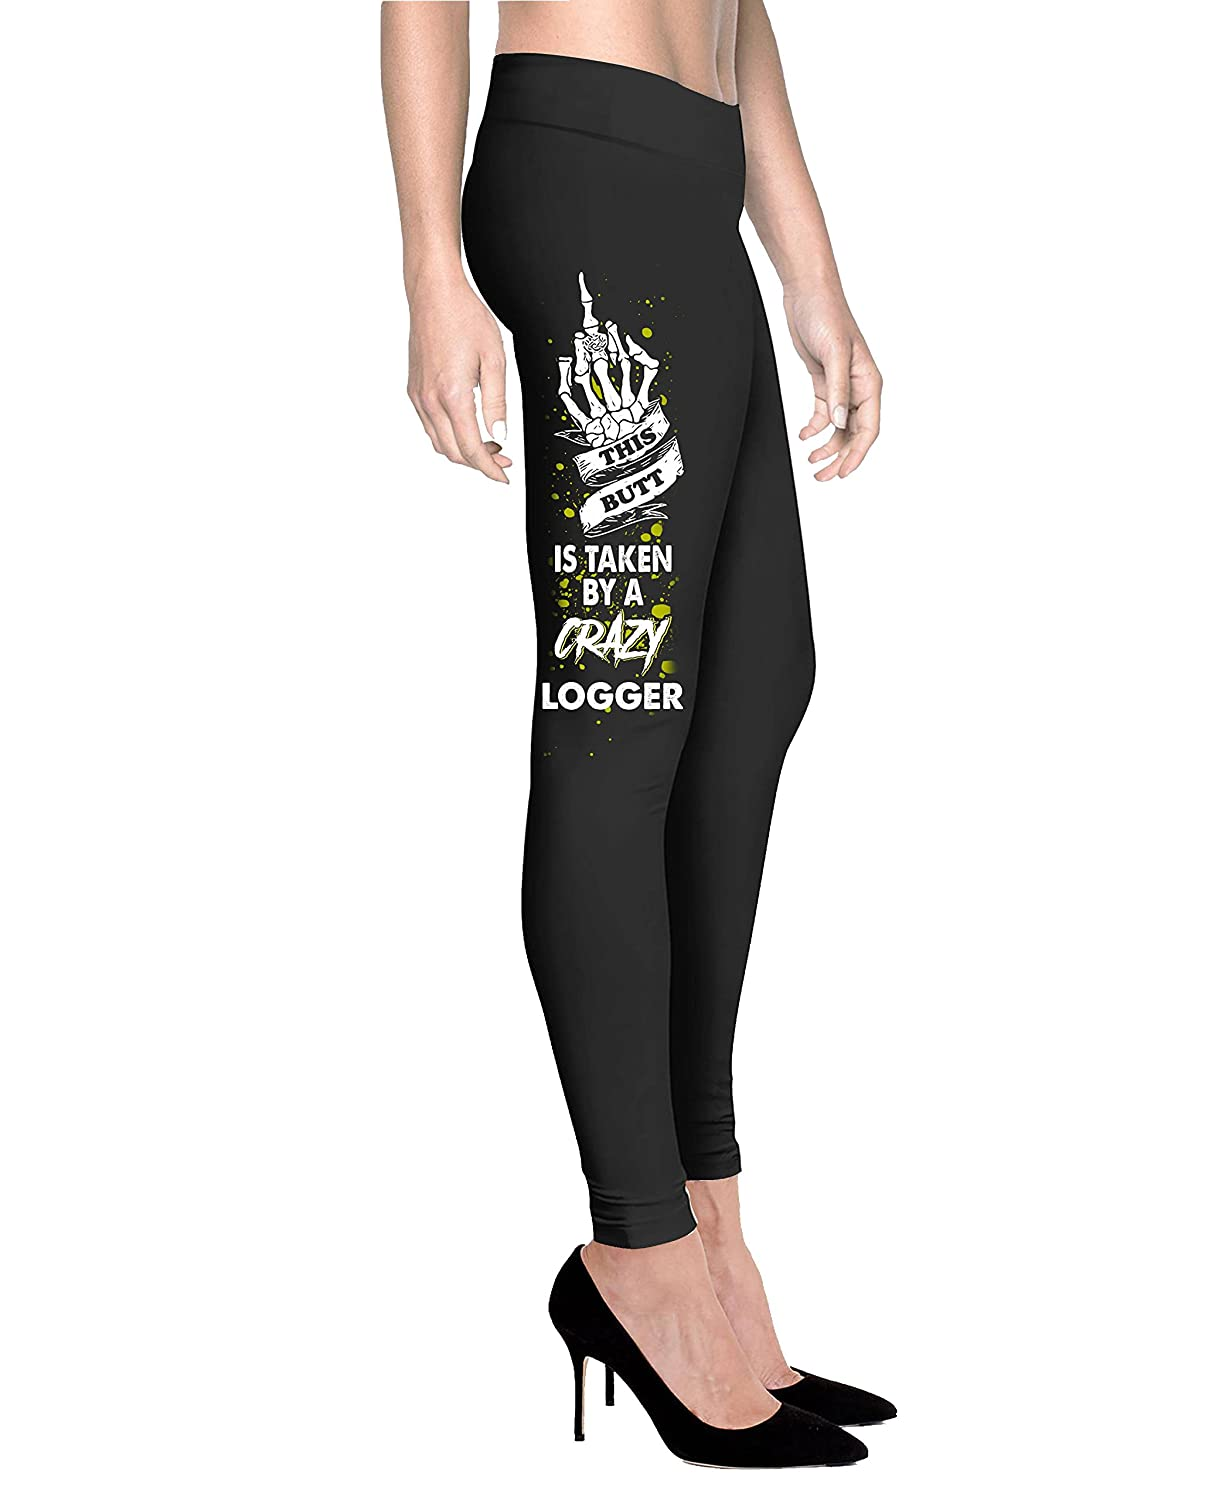 Gearbubble This Butt Is Taken by a Crazy Logger Husband - Women Comfort Fit Legging - Black